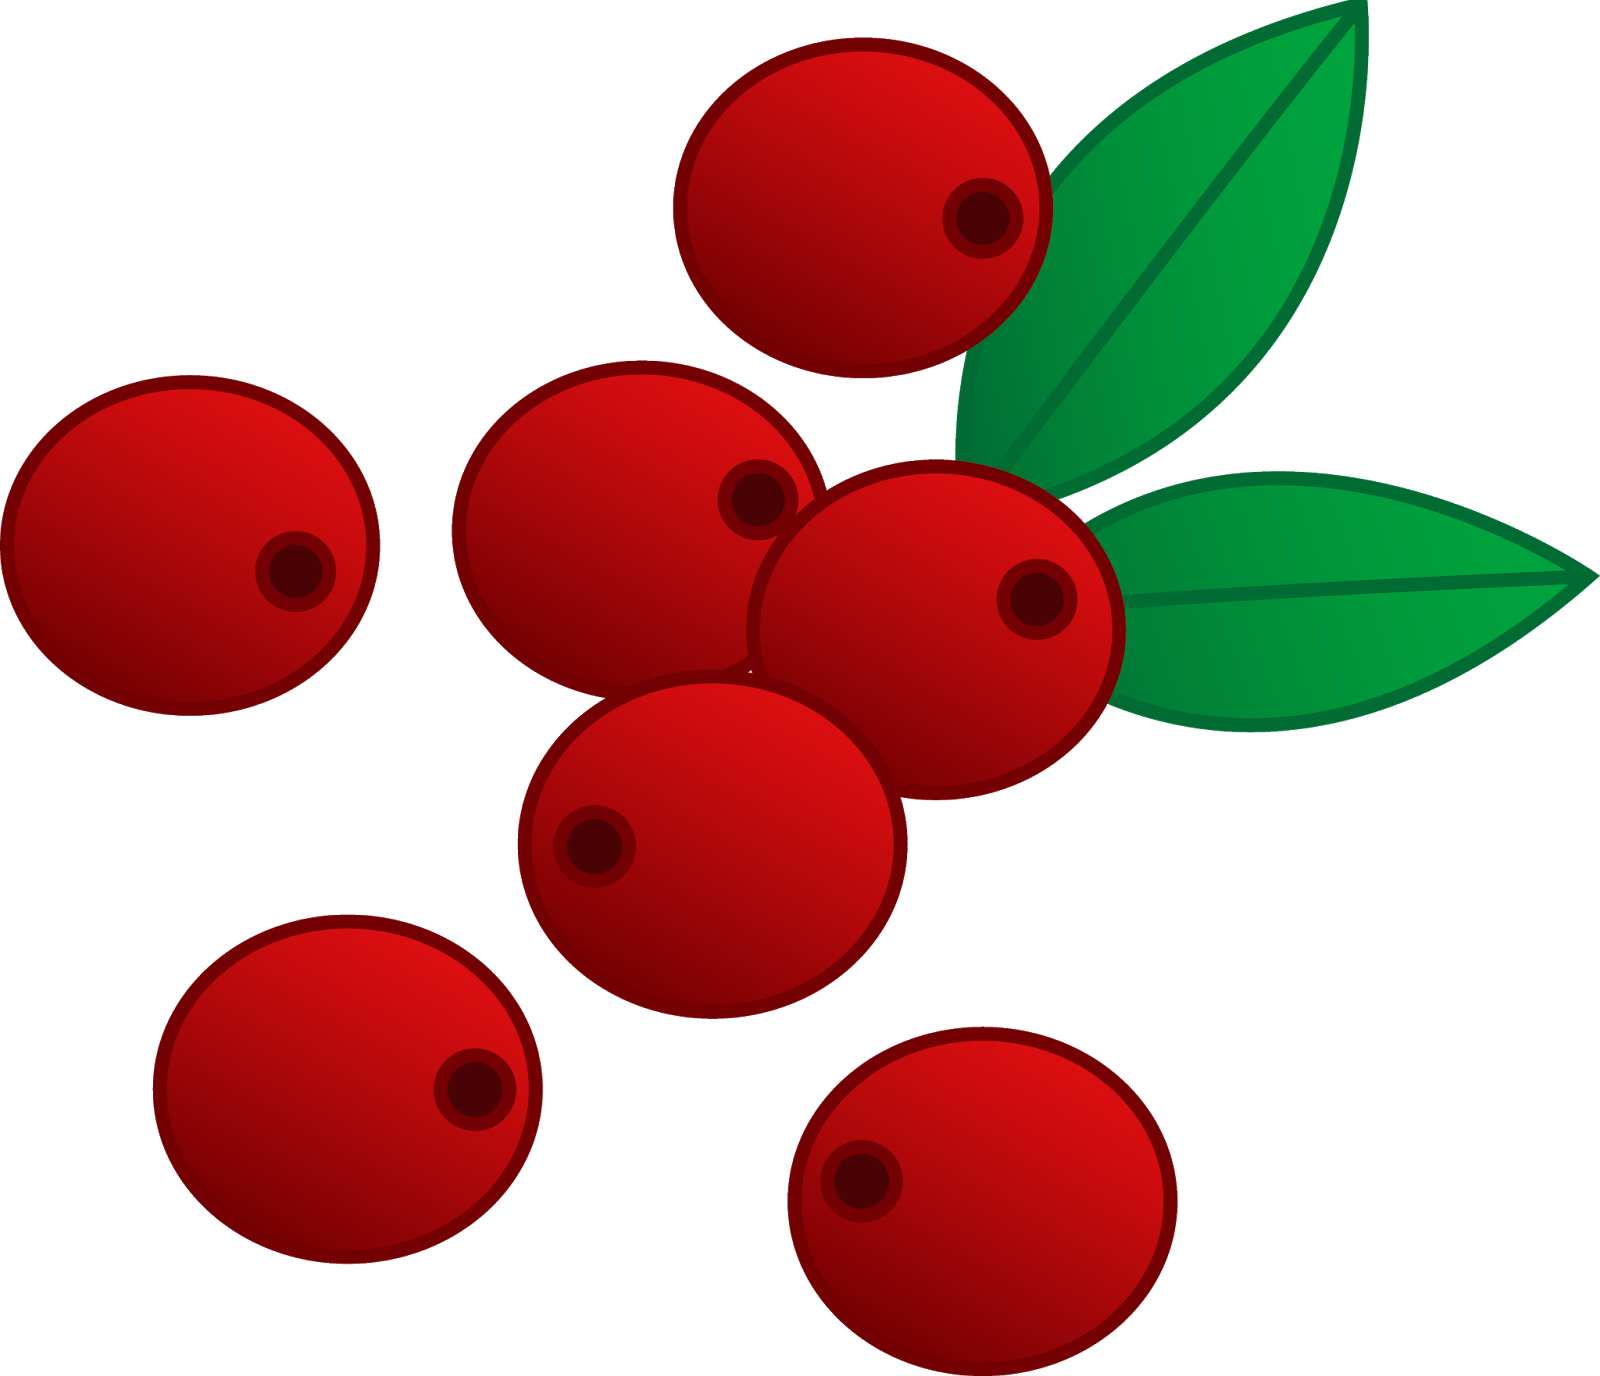 cranberry 20clipart clipart panda free clipart images rh clipartpanda com cranberry sauce clip art cranberry clipart black and white